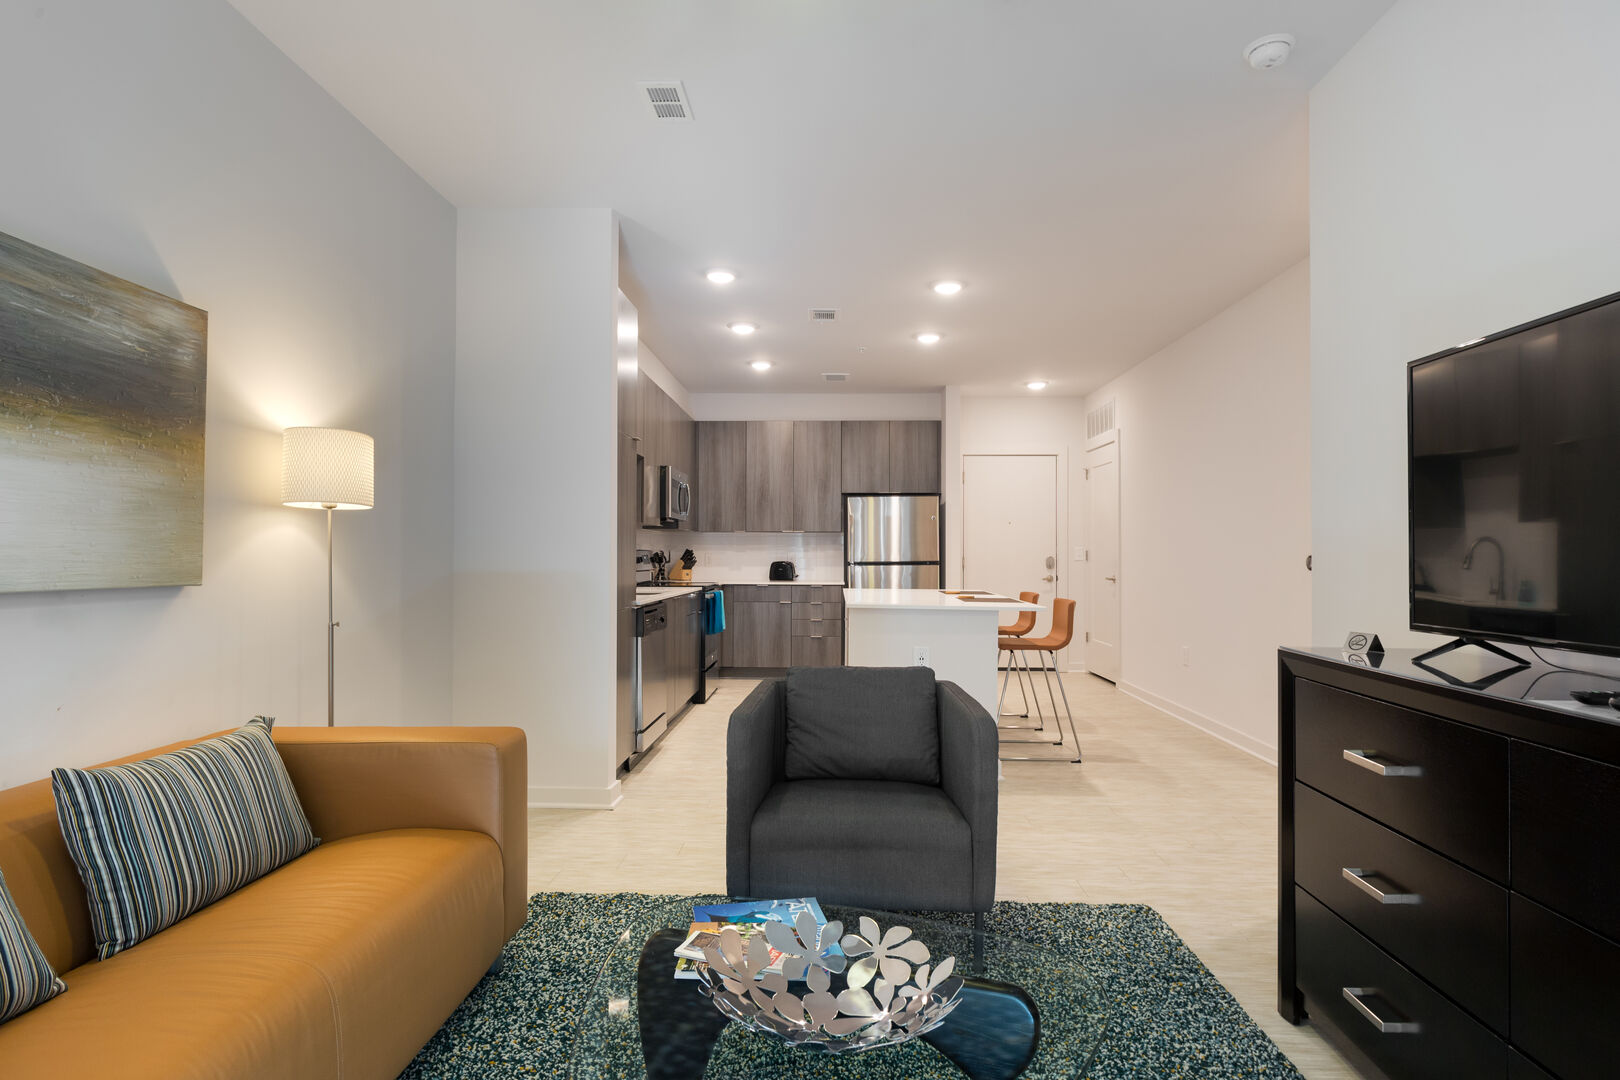 Contemporary Open Kitchen and Living Room - Corporate Apartments Near Me - 1-Bedroom Spectacular Suites